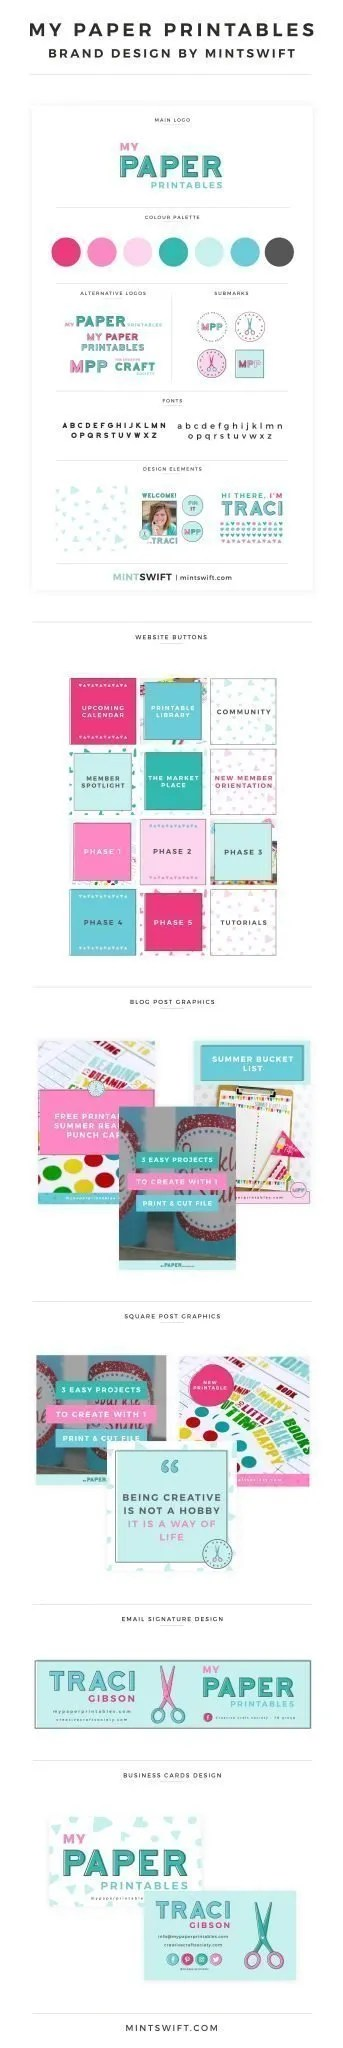 My Paper Printables - Brand Design by MintSwift